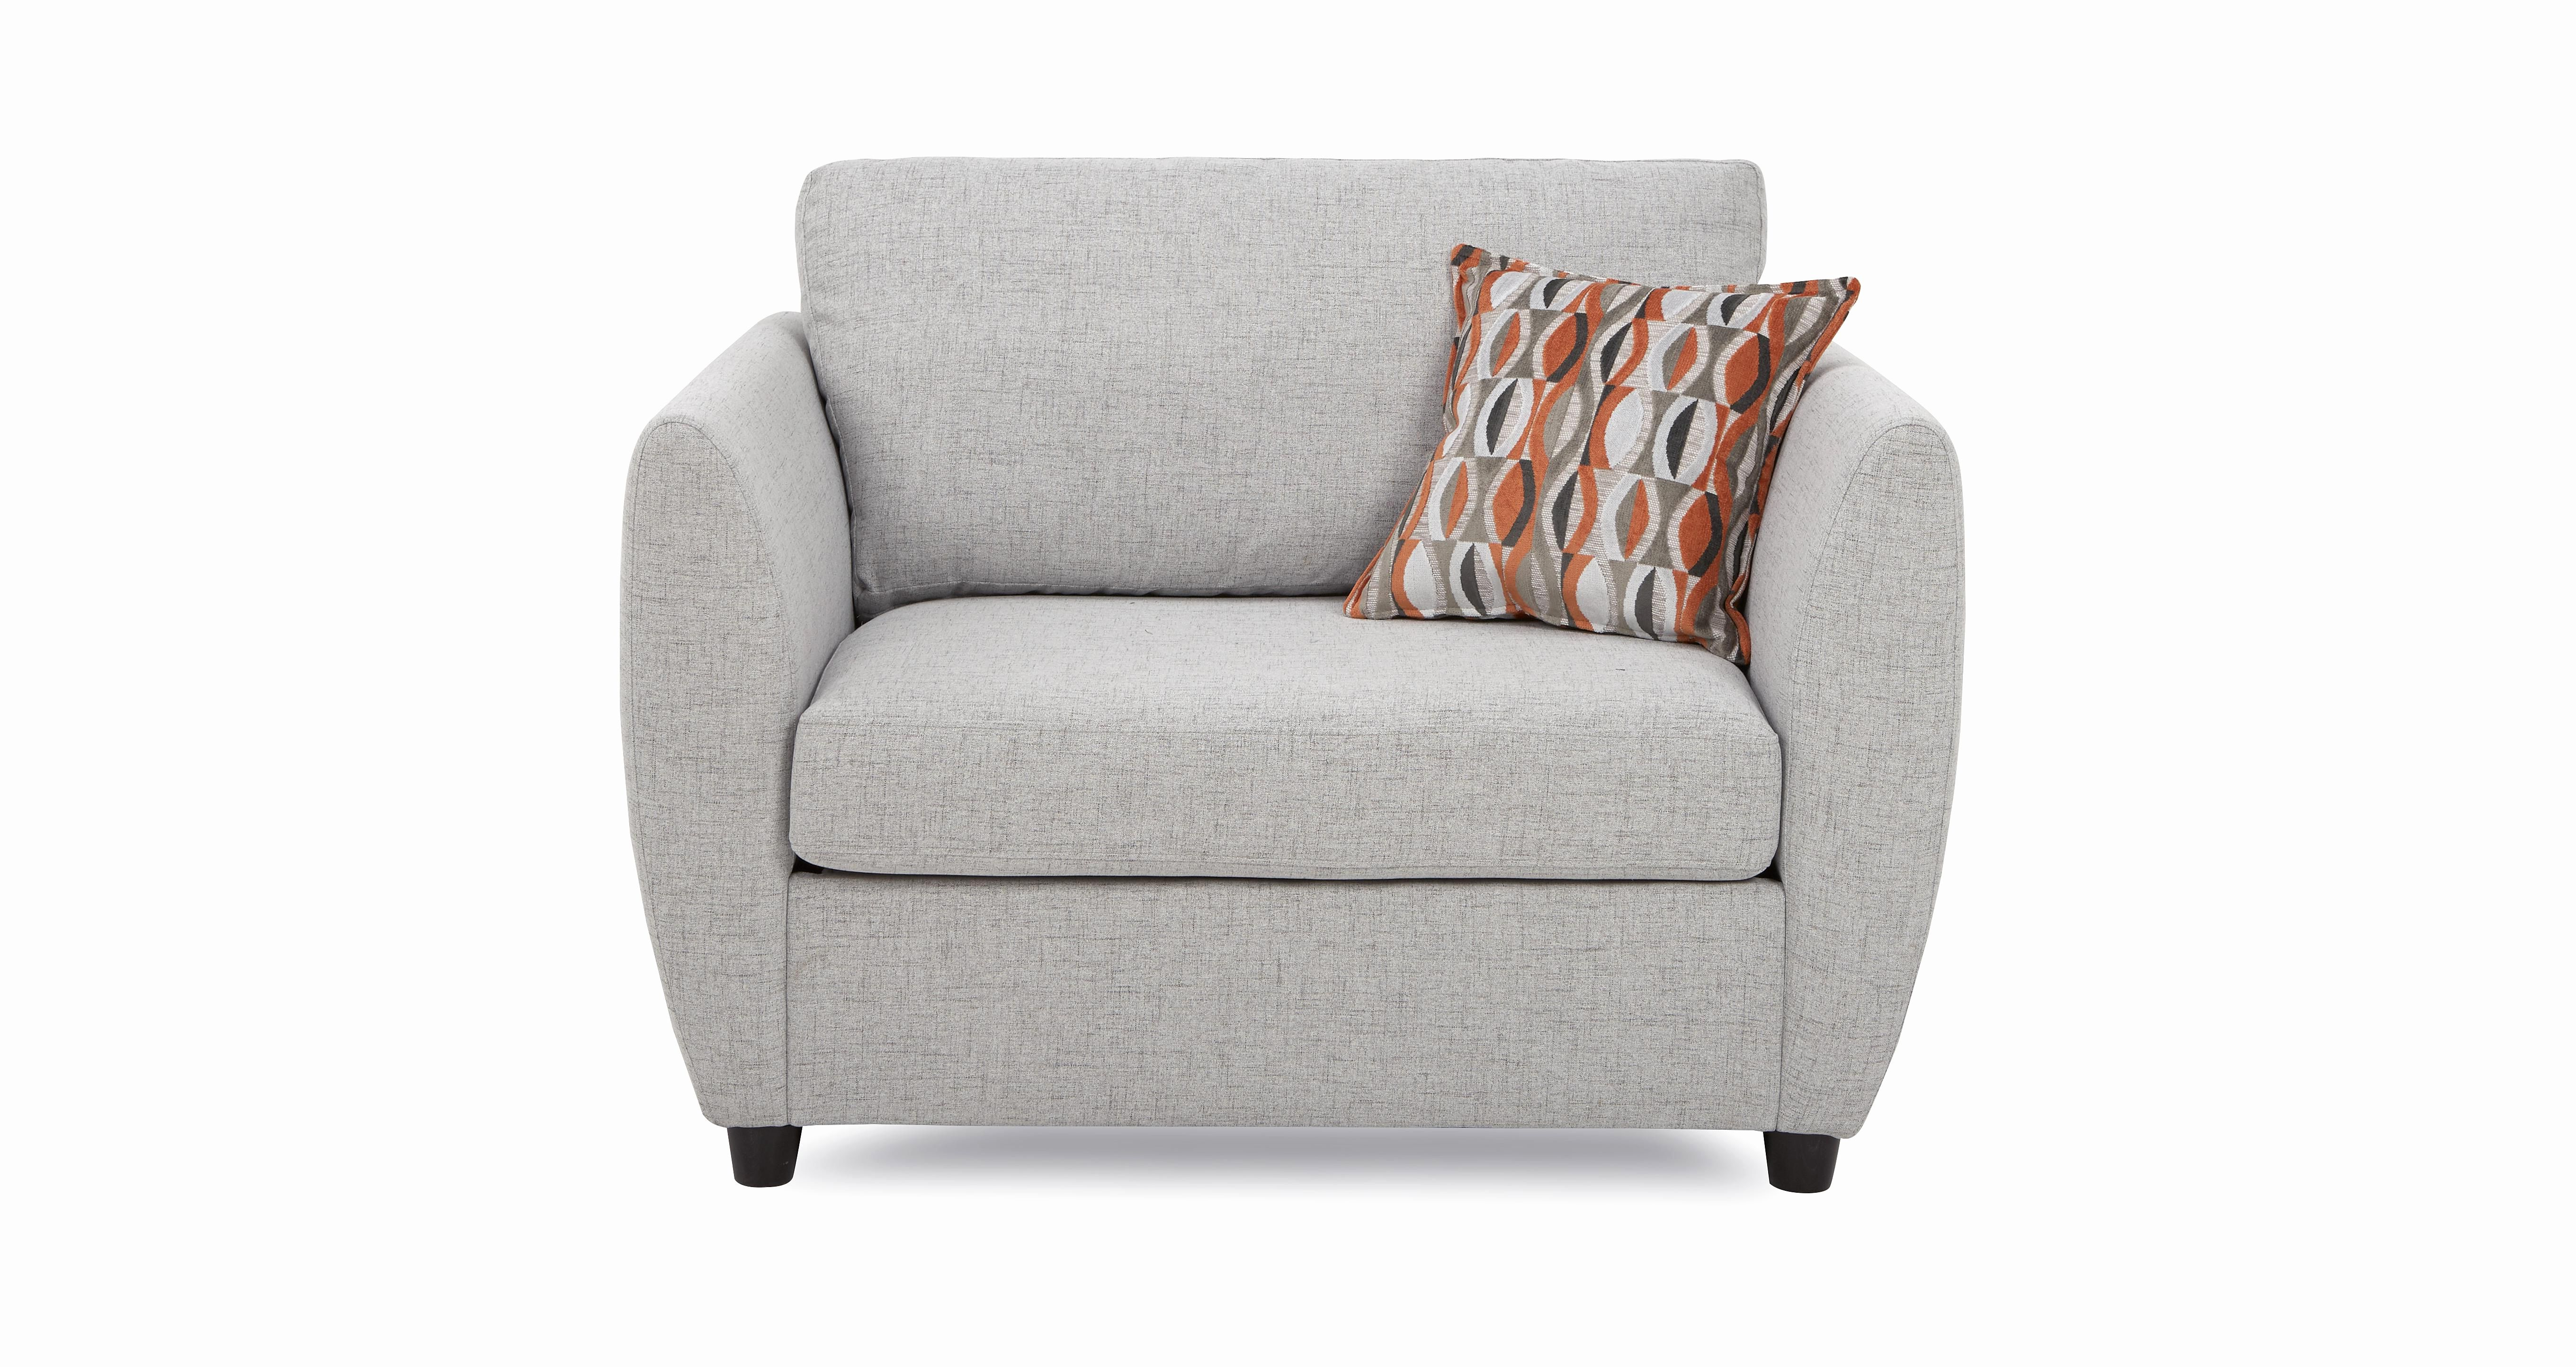 Beautiful Sofa Chairs For Bedroom Shot Sofa Chairs For Bedroom Regarding Popular Sofa Beds Chairs (View 2 of 20)